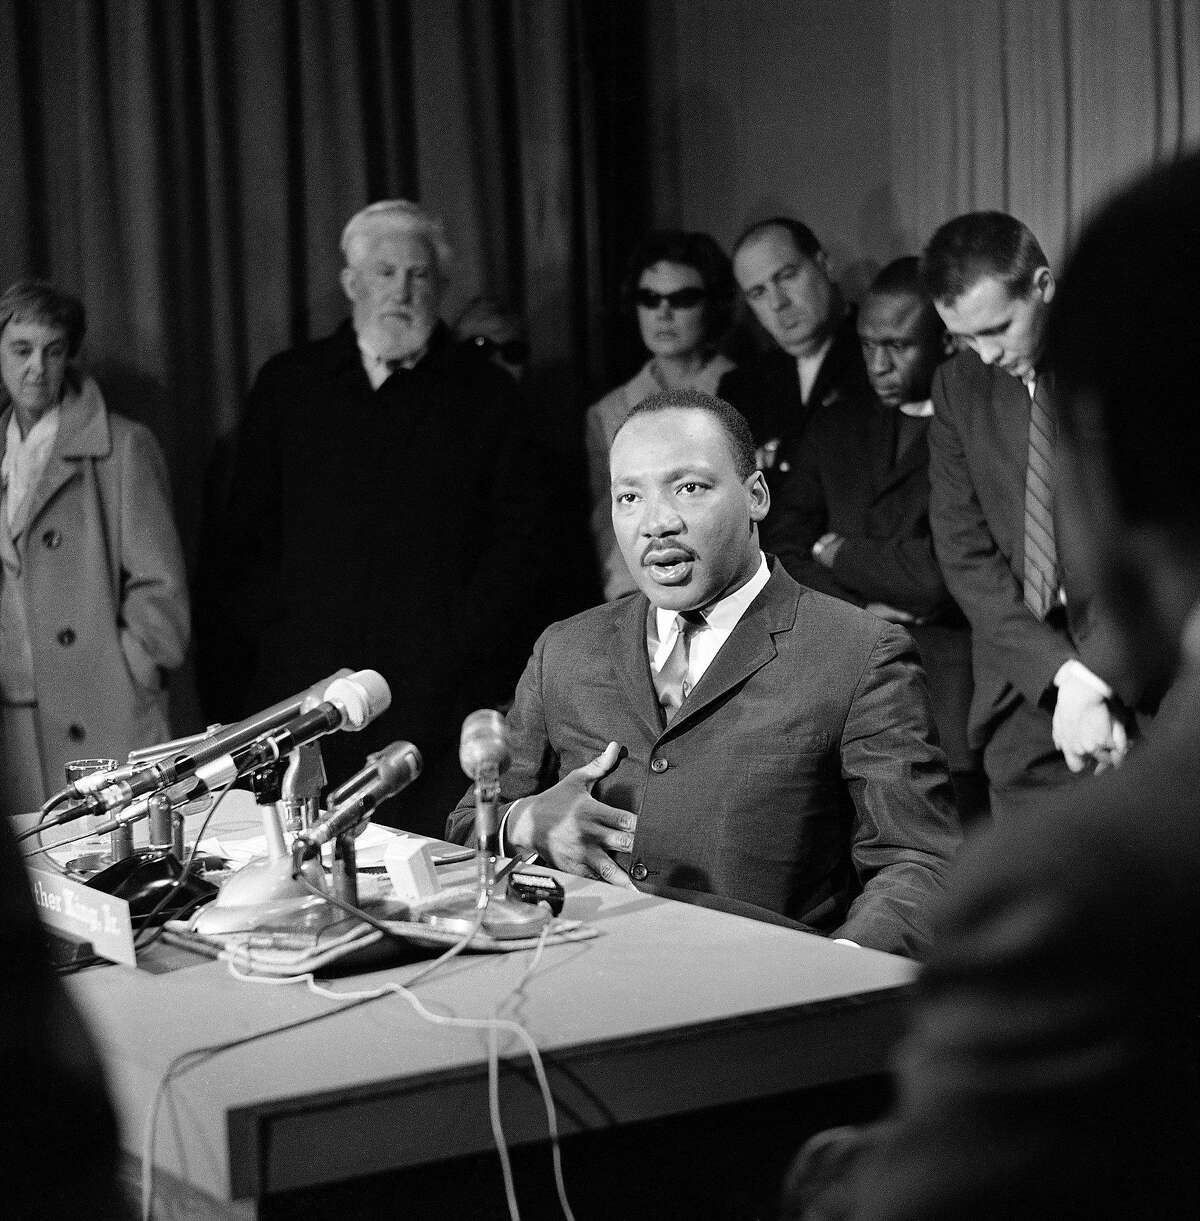 Dr. Martin Luther King speaks from San Francisco on March 28, 1965 on a television program originating in Washington (�Meet the Press�) and announced him intention of asking an economic boycott on goods made in Alabama. King spoke to an overflow crowd in Grace Cathedral atop Nob Hill in San Francisco. (AP Photo)